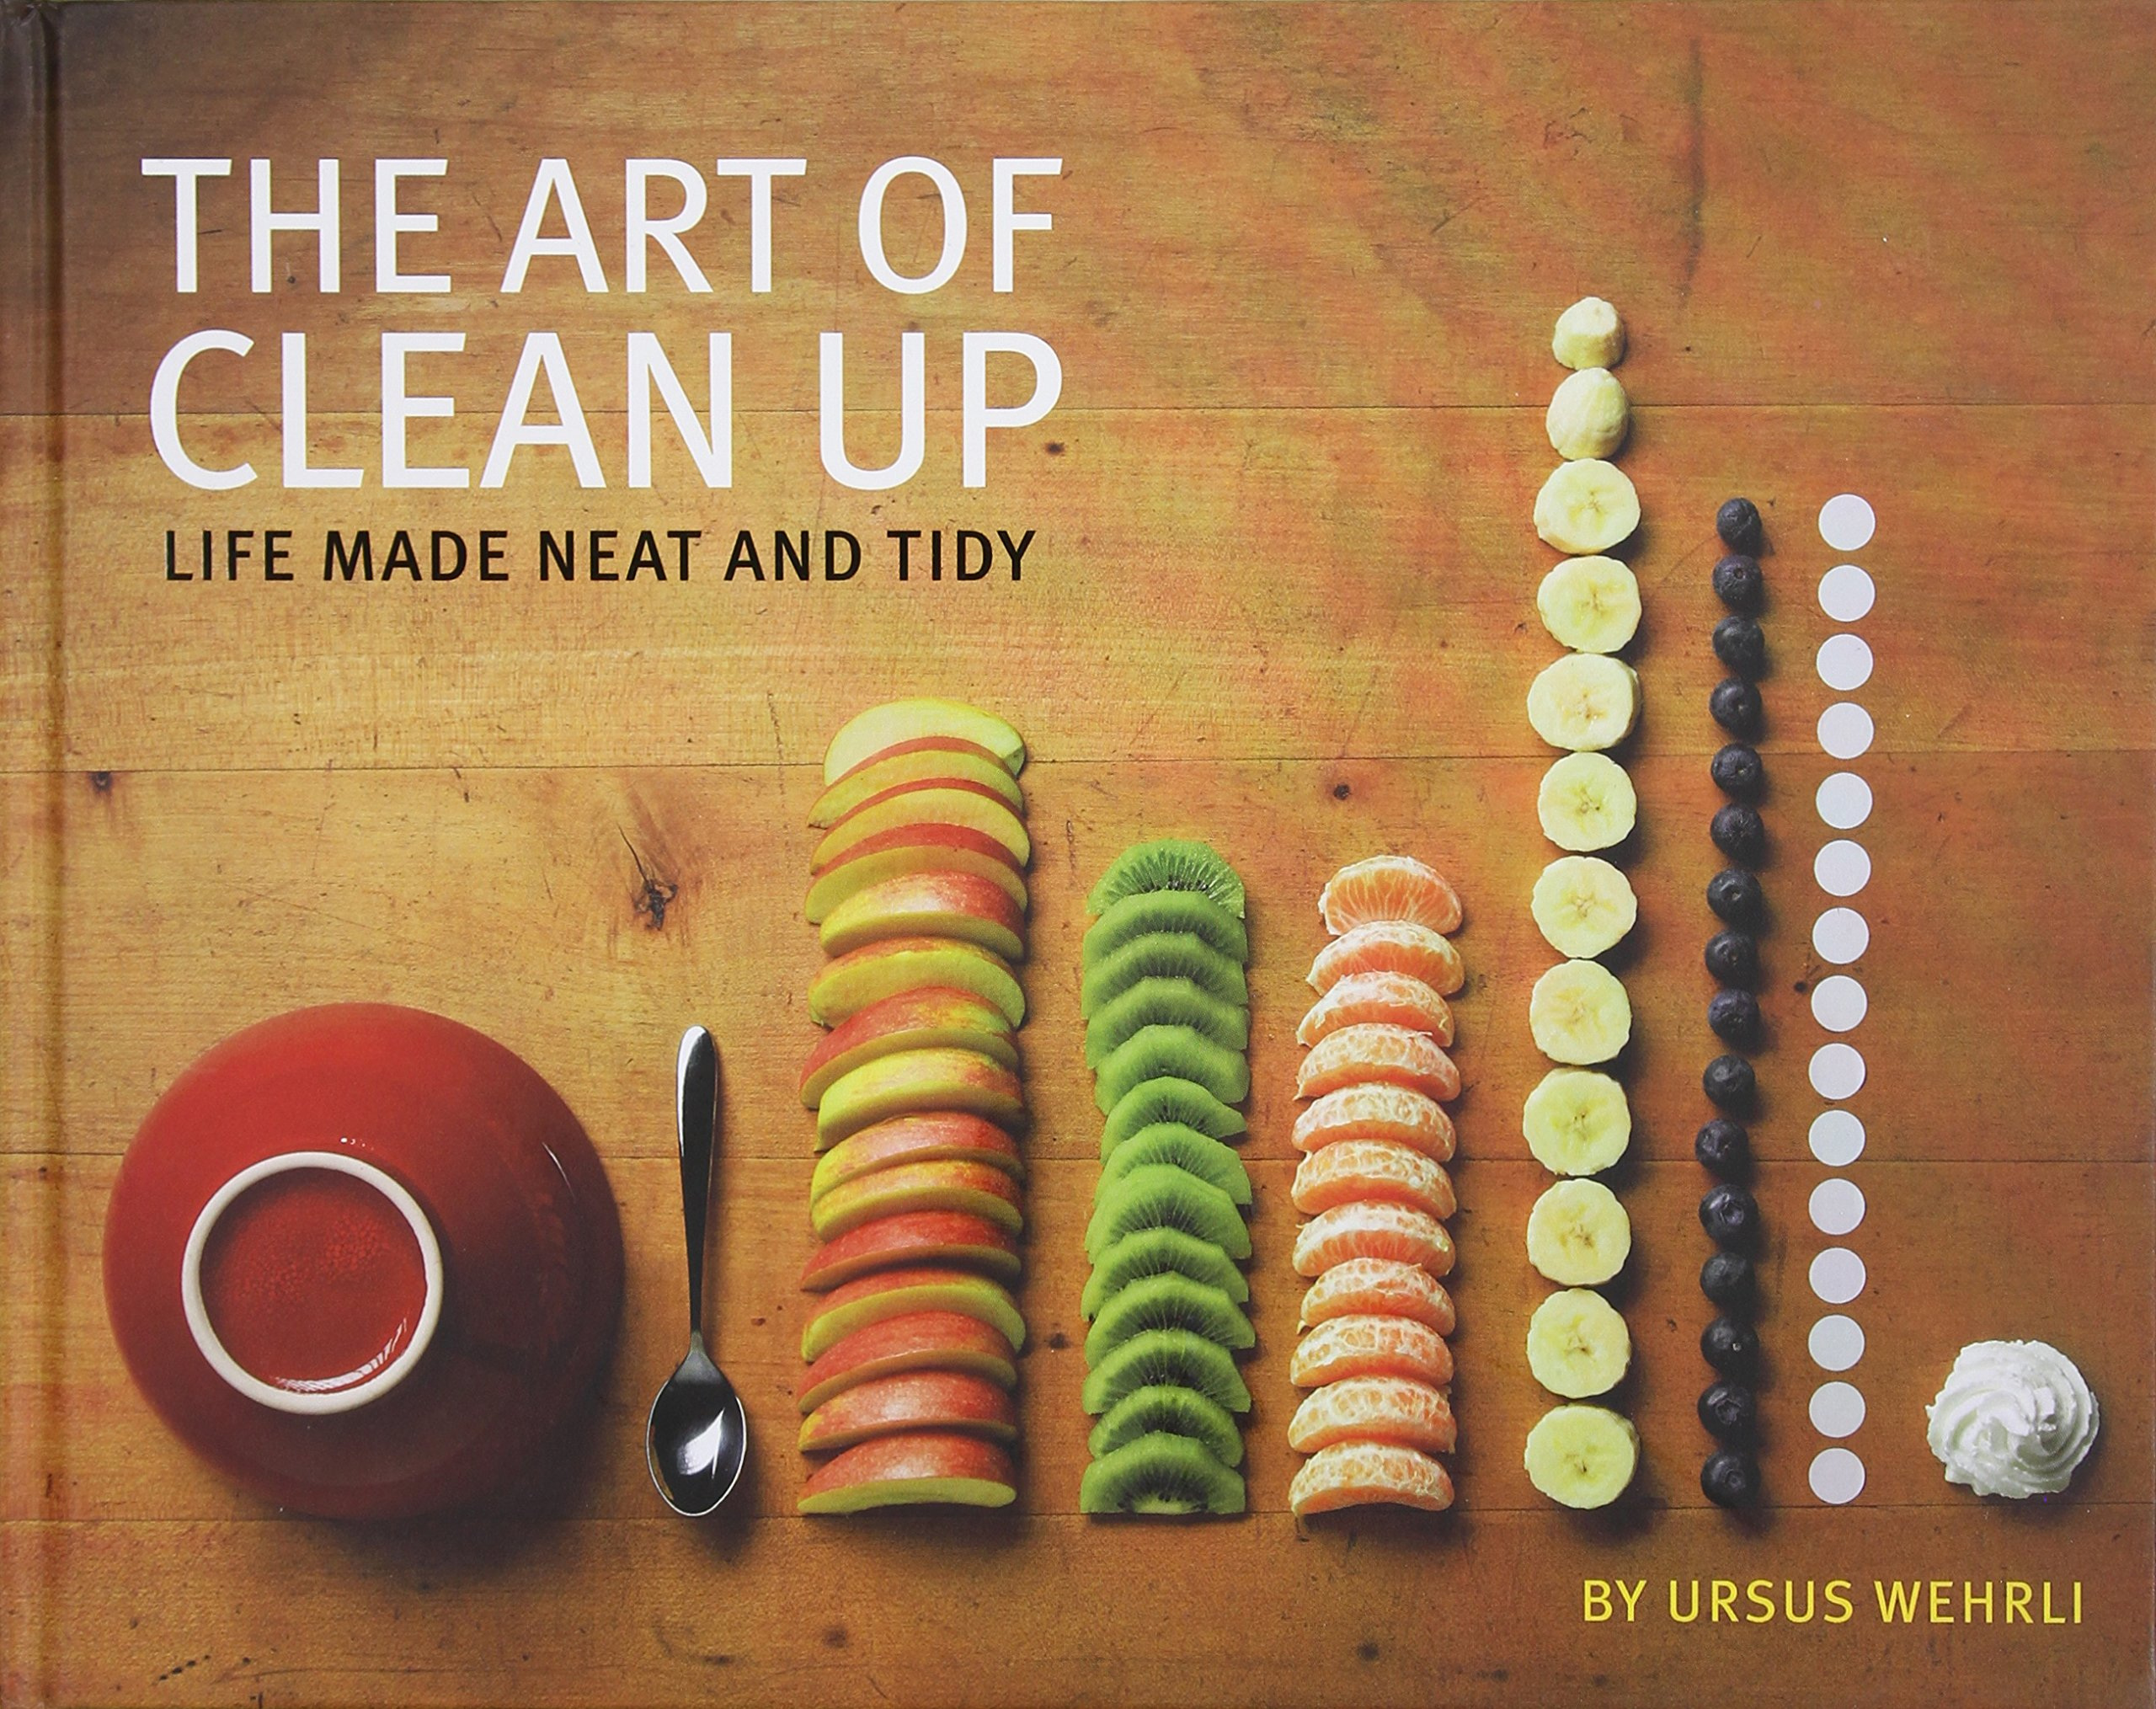 The Art of Clean Up: Life Made Neat and Tidy by Ursus Wehrli, Geri Born & Daniel Spehr - Main Image